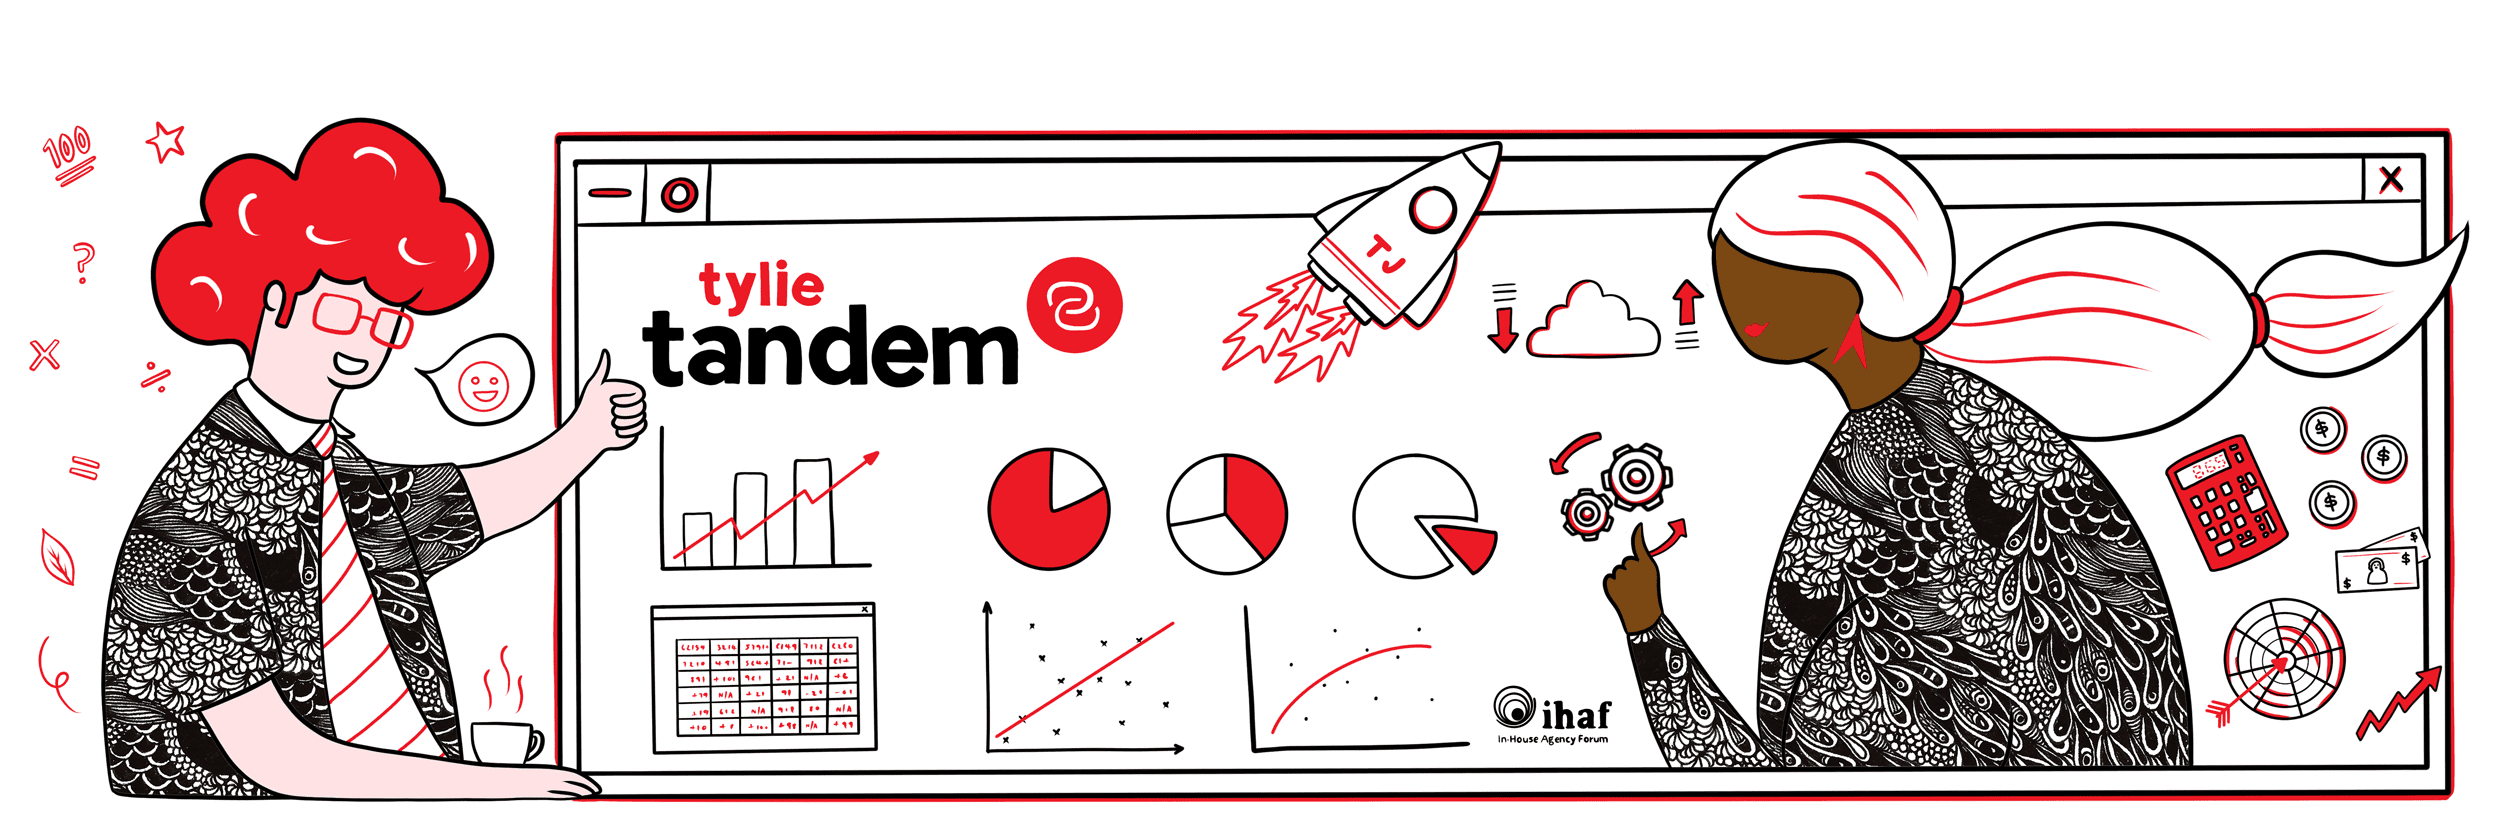 In-House Teams media delivery consulting illustration